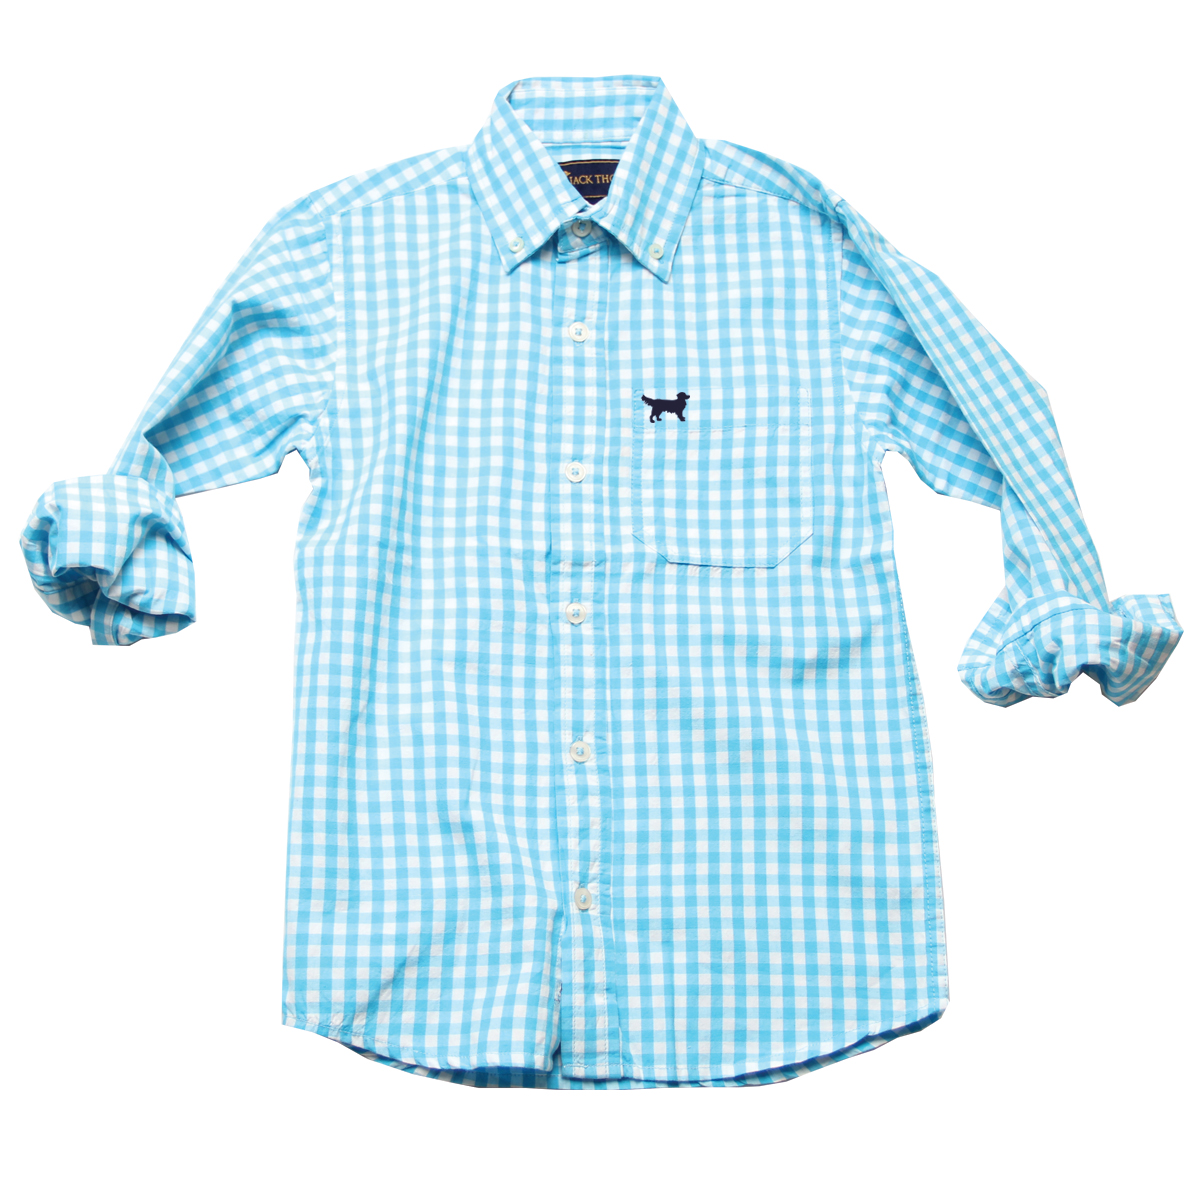 Jack Thomas Boys Long Sleeved Aqua Gingham Dress Shirt